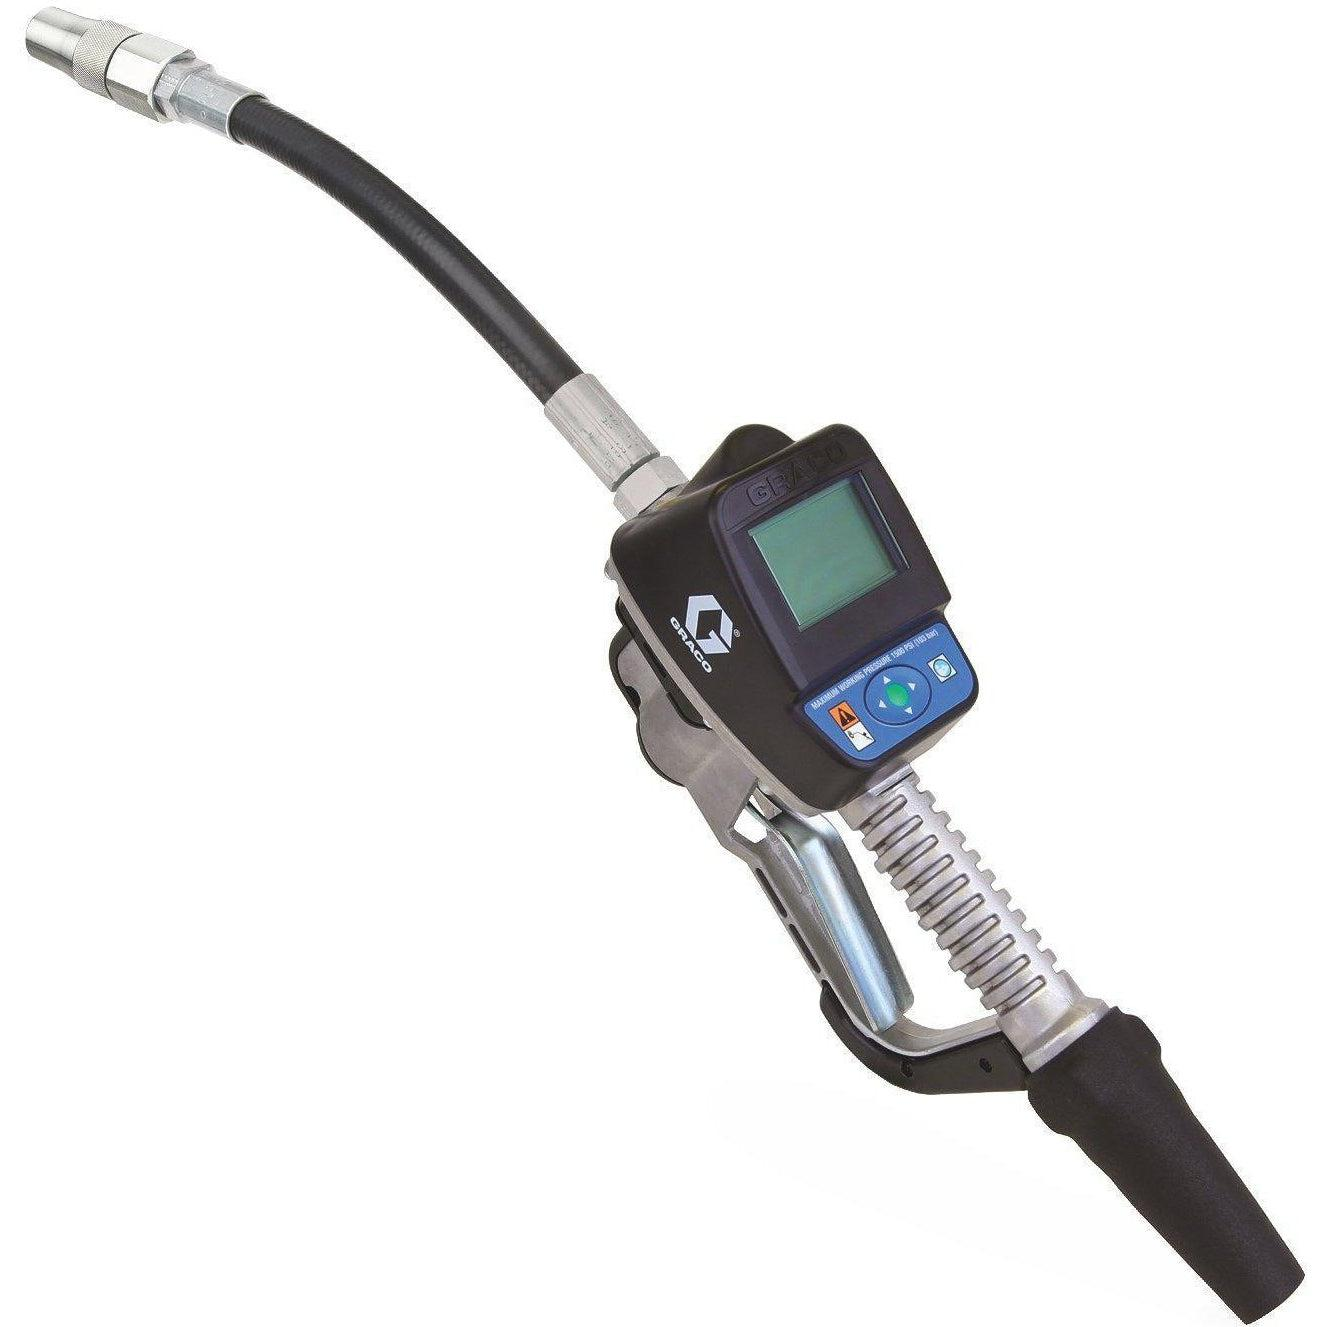 "24H157-Graco 24H157 Sdm15 Series Electronic Manual Oil/Anti-Freeze Meter - Flexible Extension - 3/4"" Inlet - Bspt-Order-Online-Fireball-Equipment"